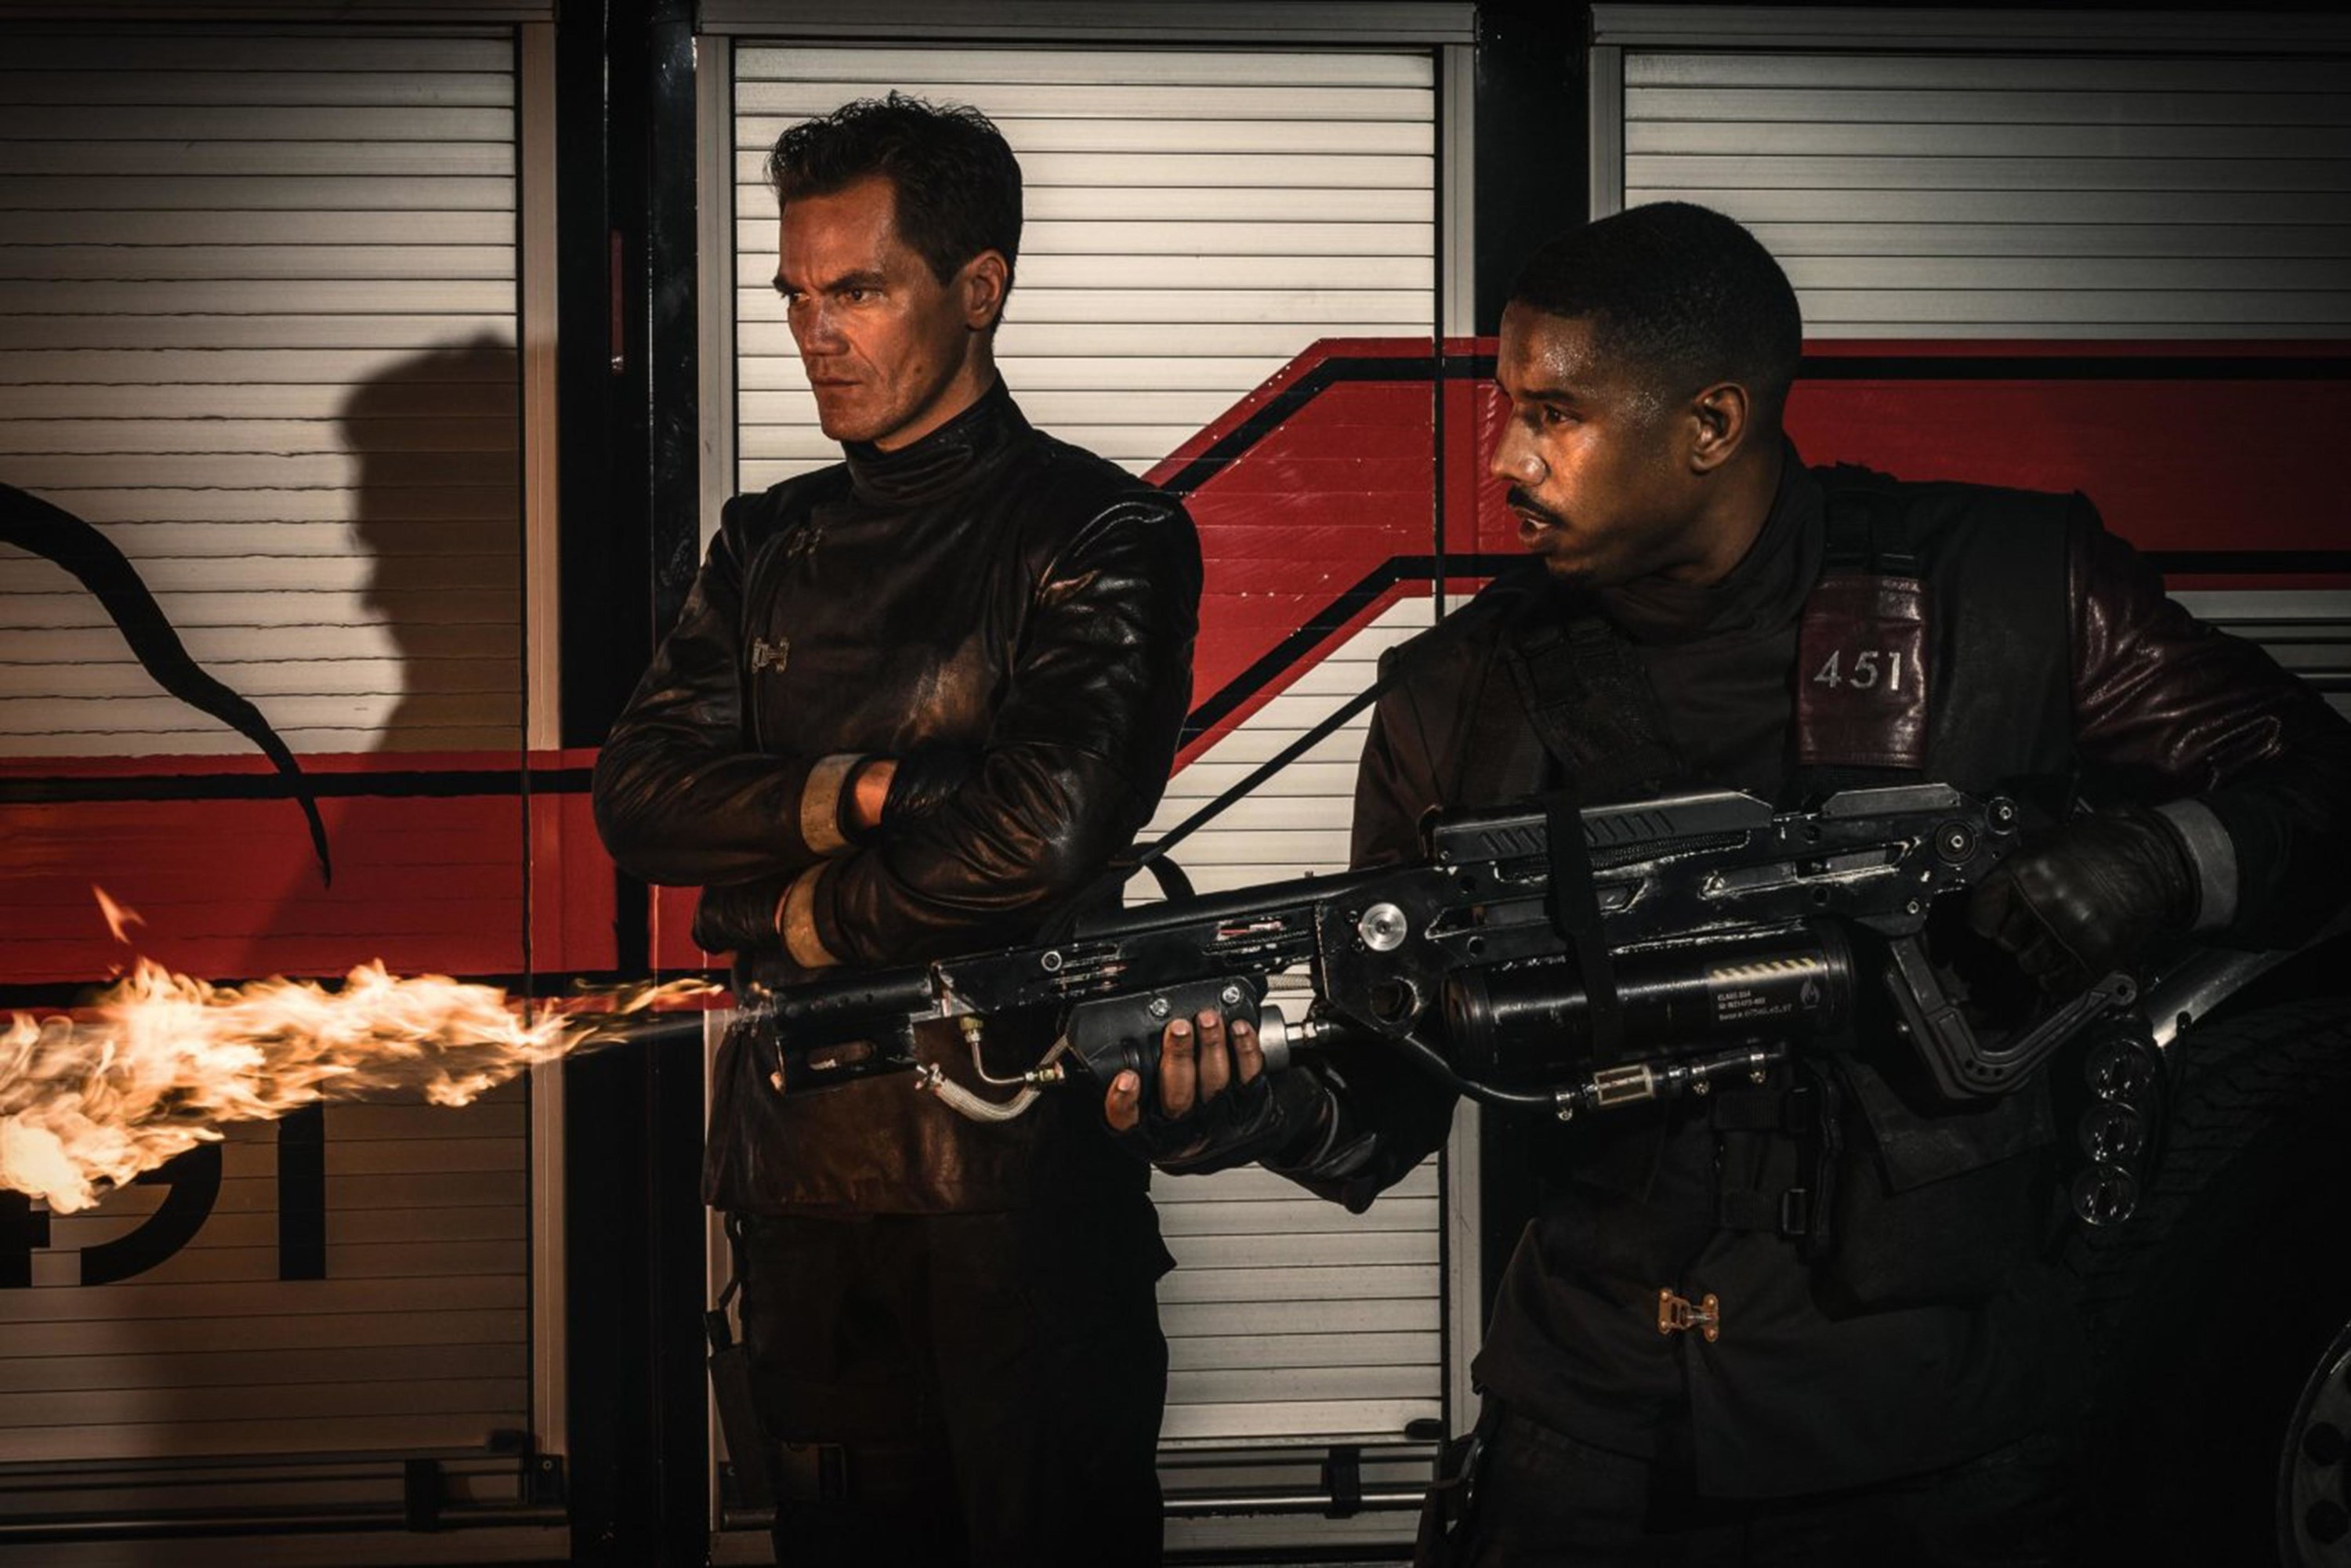 still image of michael shannon and michael b. jordan in the movie Fahrenheit 451, in the still michael b. jordan is holding a weapon that is releasing fire